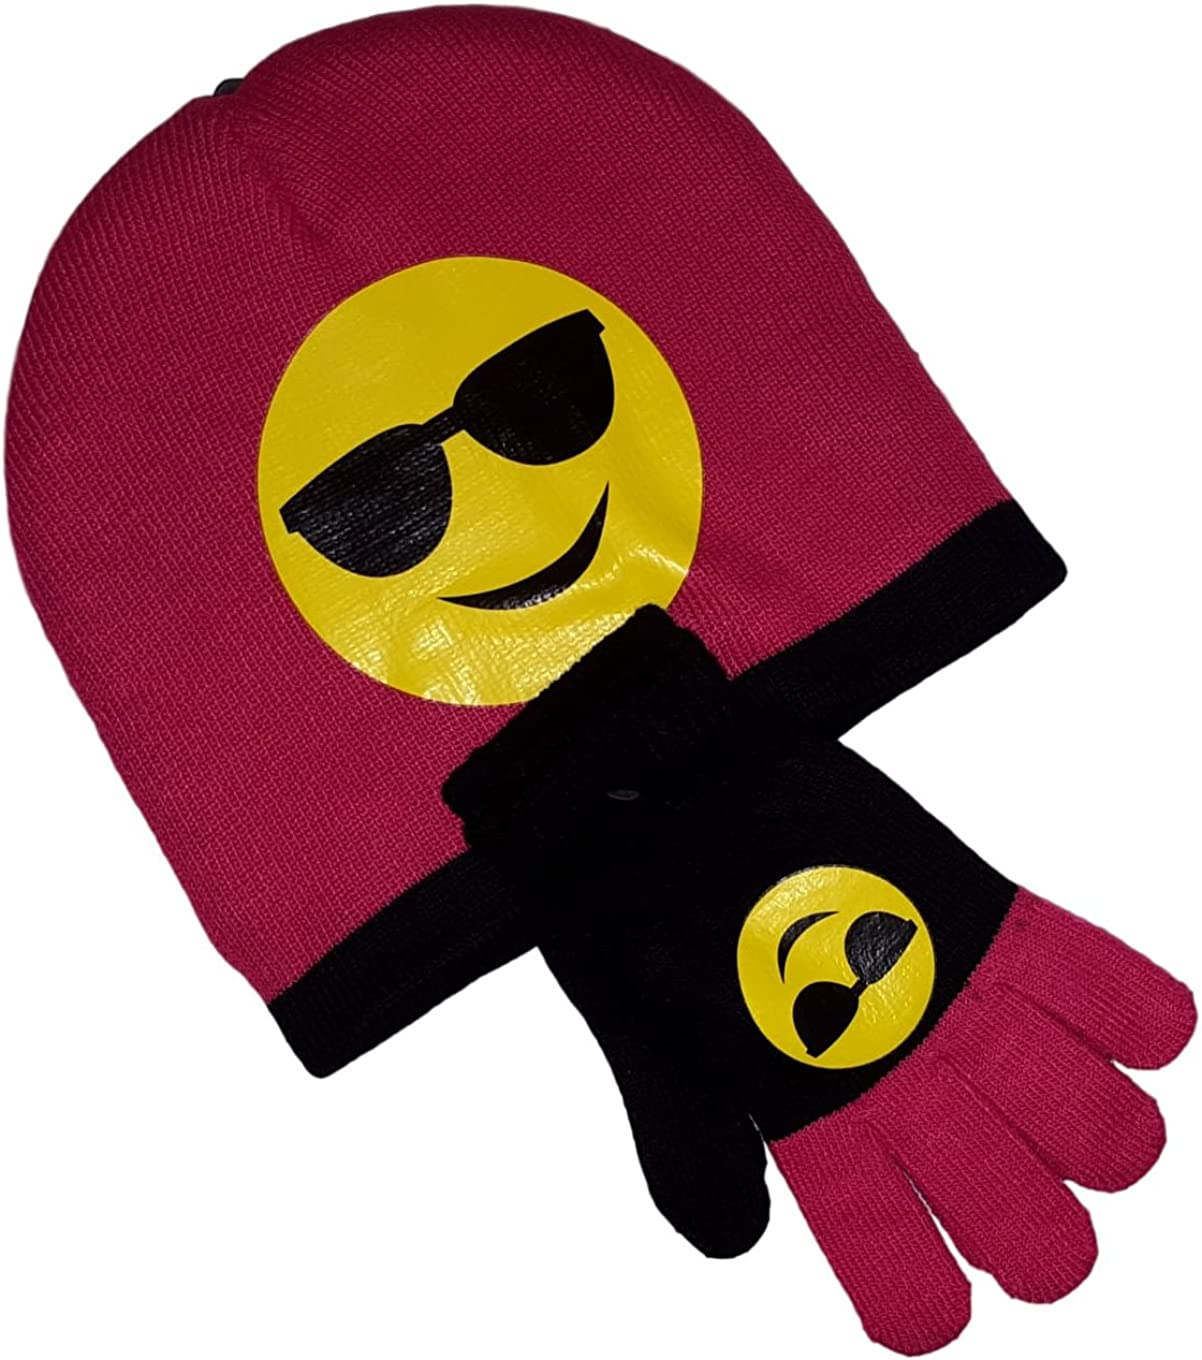 Royal Deluxe Emoji Knit Hat and Glove Set with Icon Smiley Faces